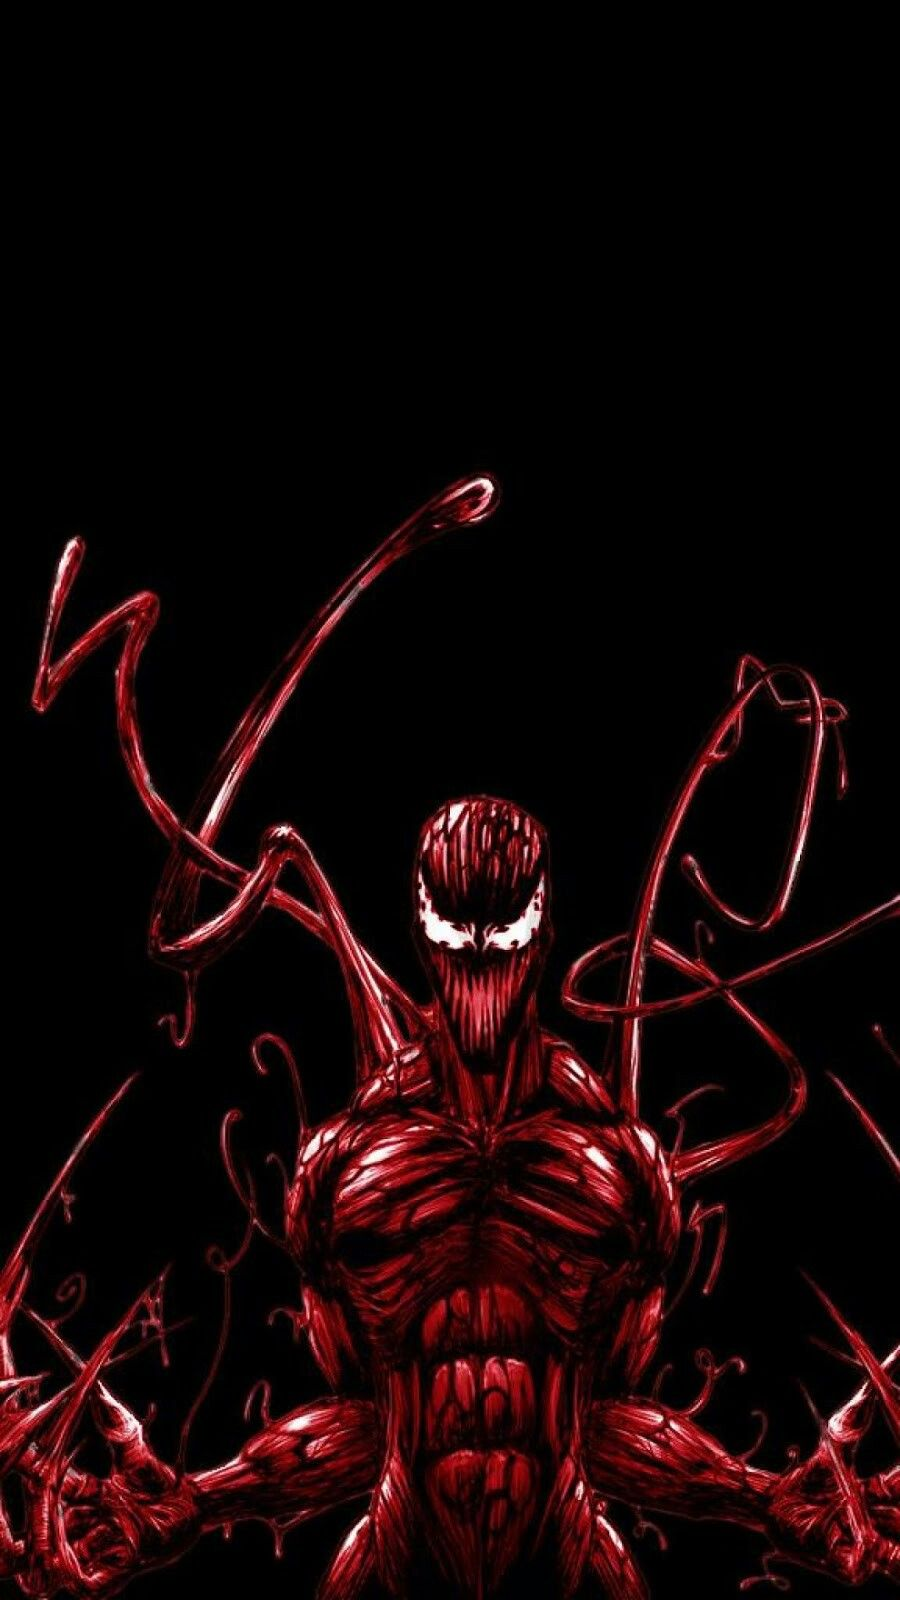 Carnage Carnage Marvel Spiderman Comic Marvel Villains